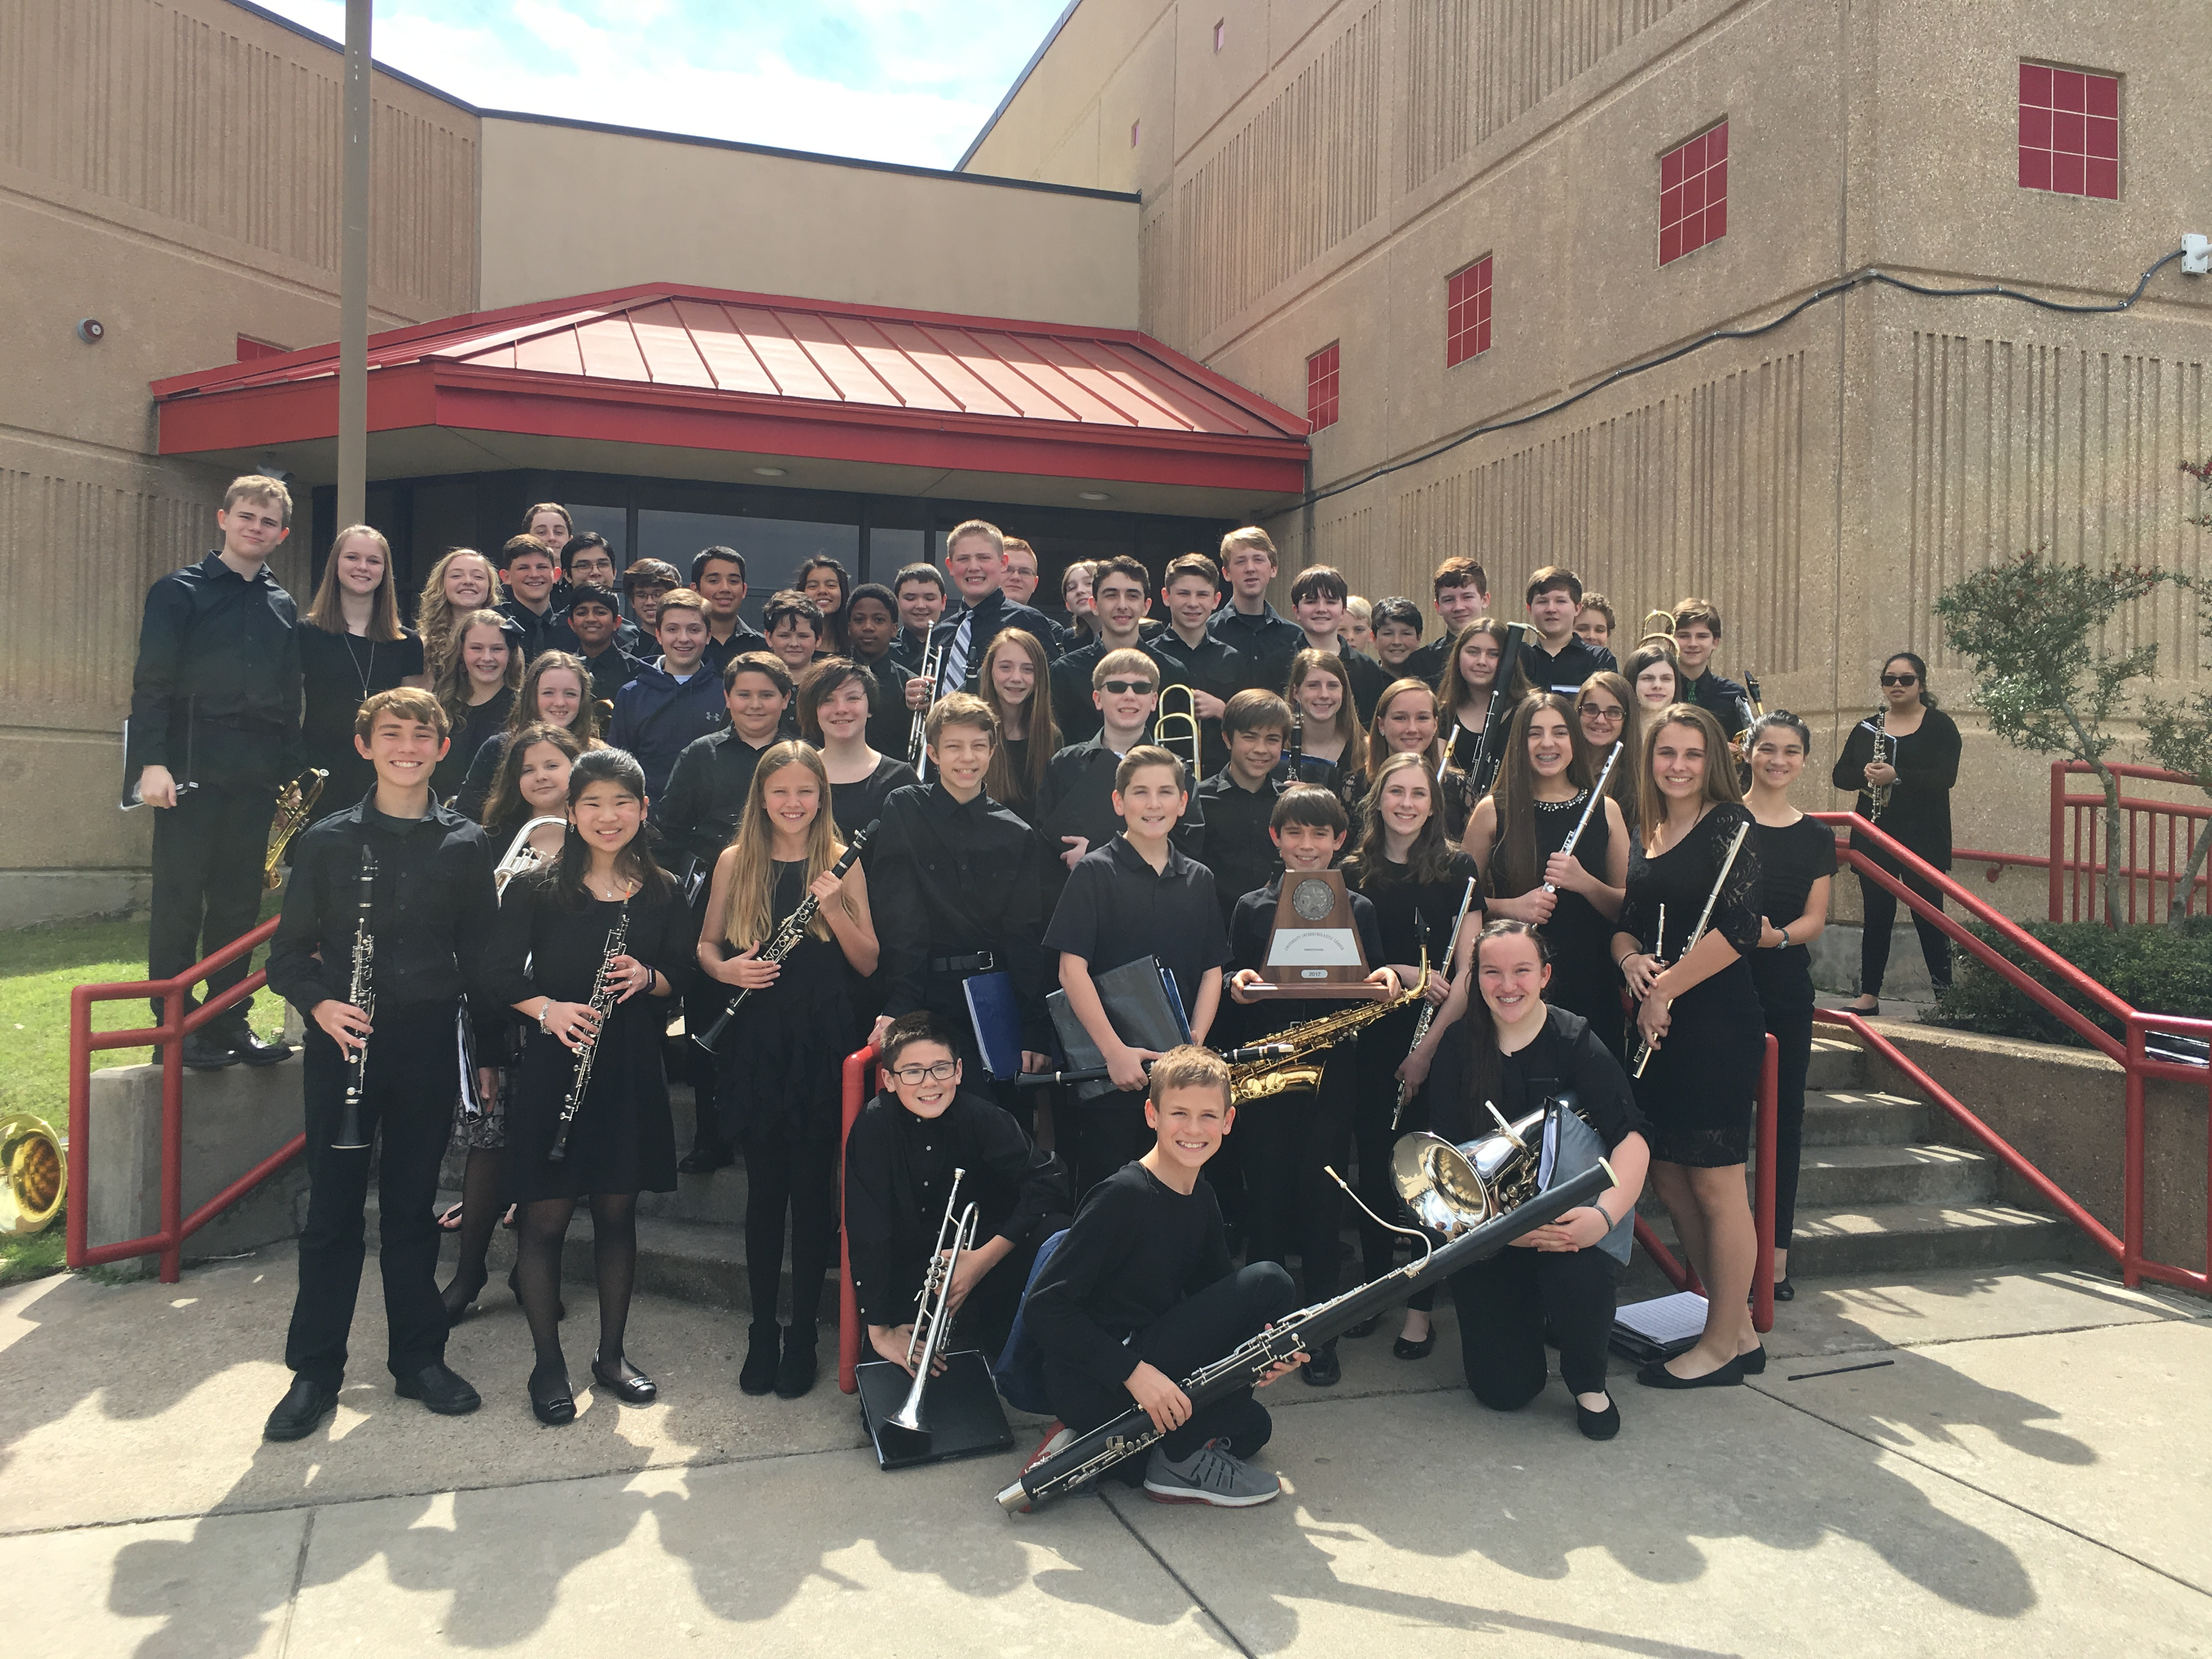 UIL Group with Instruments